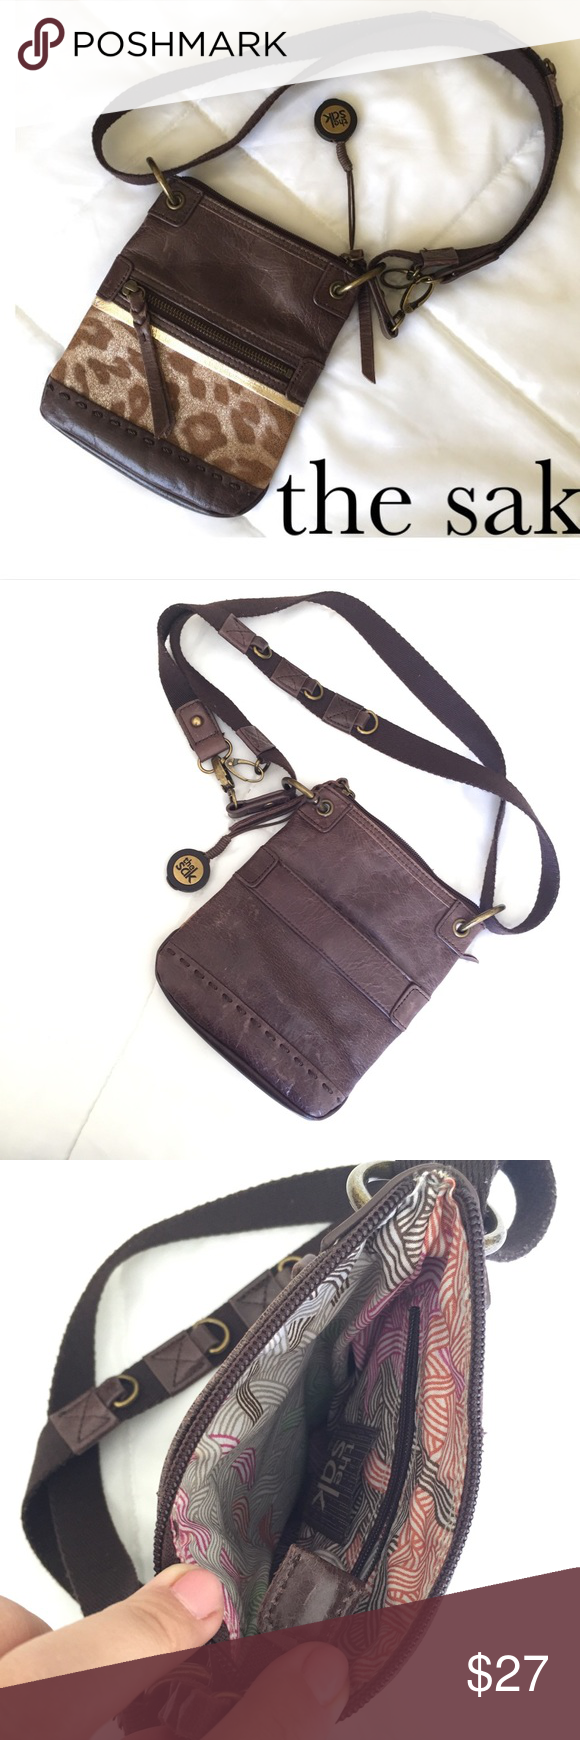 """SALE ❤️ The Sak Crossbody Purse ❤️ Awesome The Sak Small Crossbody Purse! ❤️ Perfect vacay, festival, or everyday purse! Adjustable strap gives you lots of wearing options! Measures 8"""" height, 6.5"""" length, and 3/4"""" width. Gently loved, so a few little scuffs that only add to its carefree character.  The Sak Bags Crossbody Bags"""